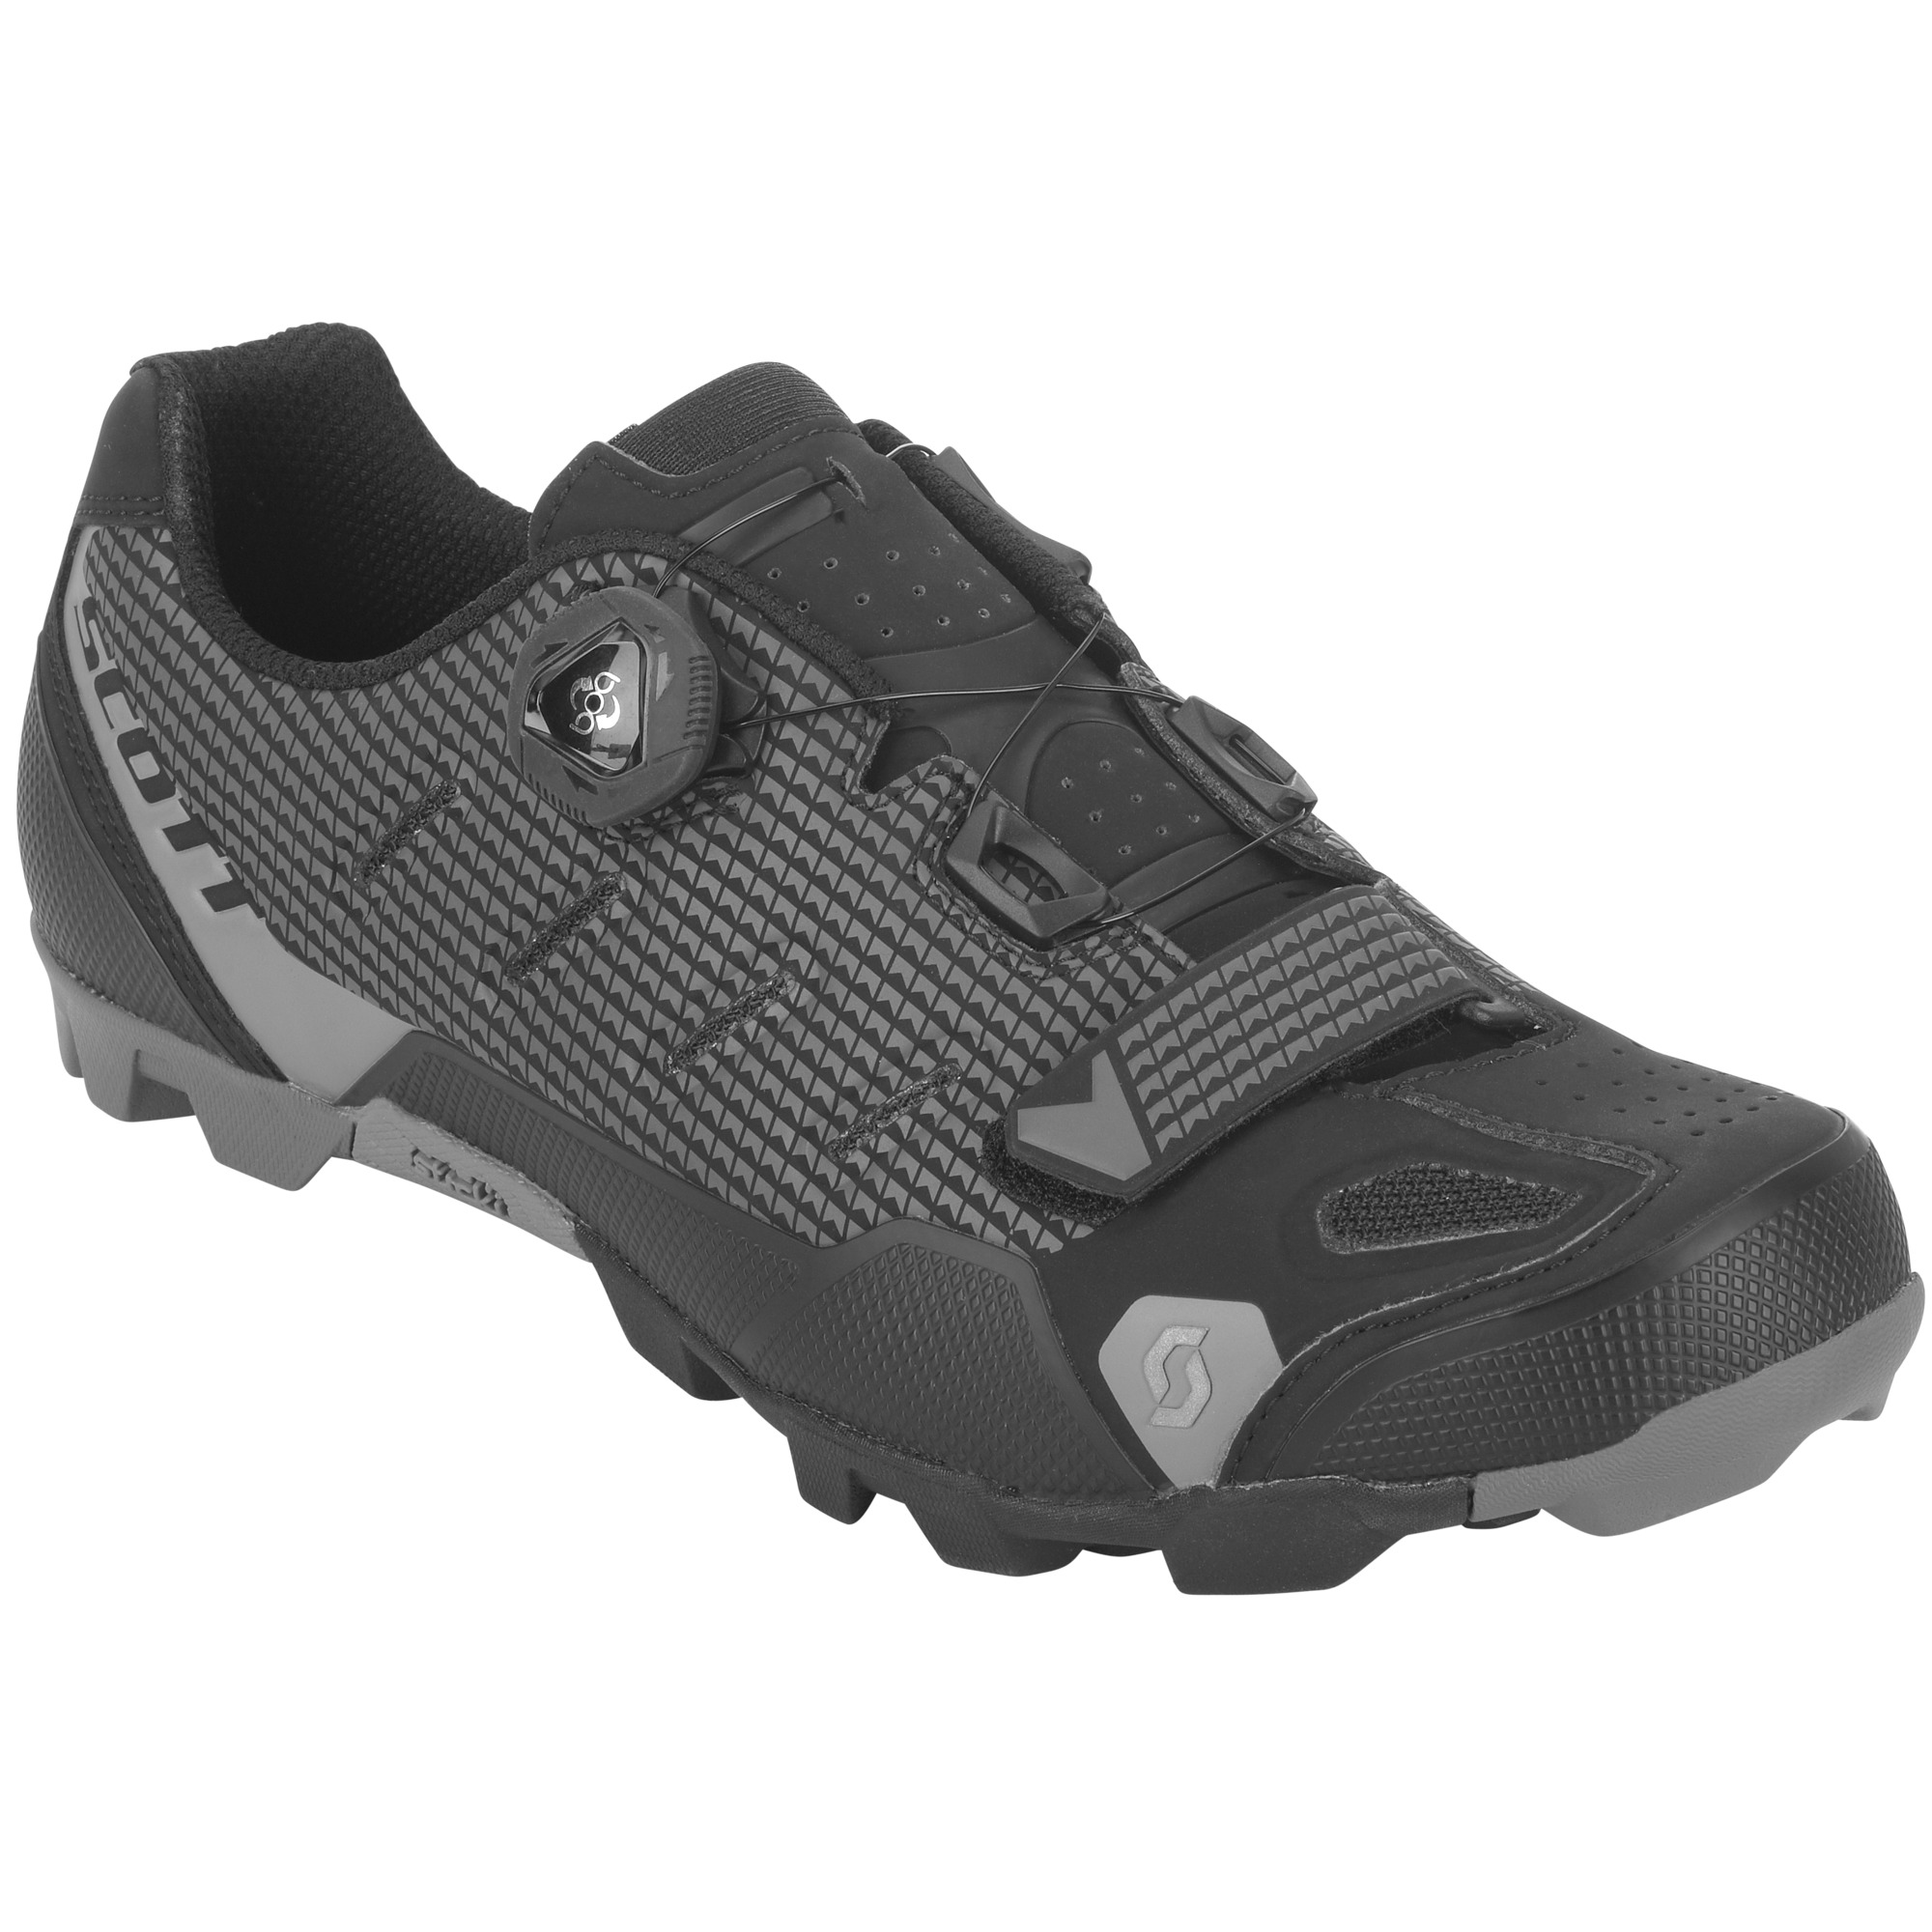 Zapatillas SCOTT Mtb Prowl-r Rs